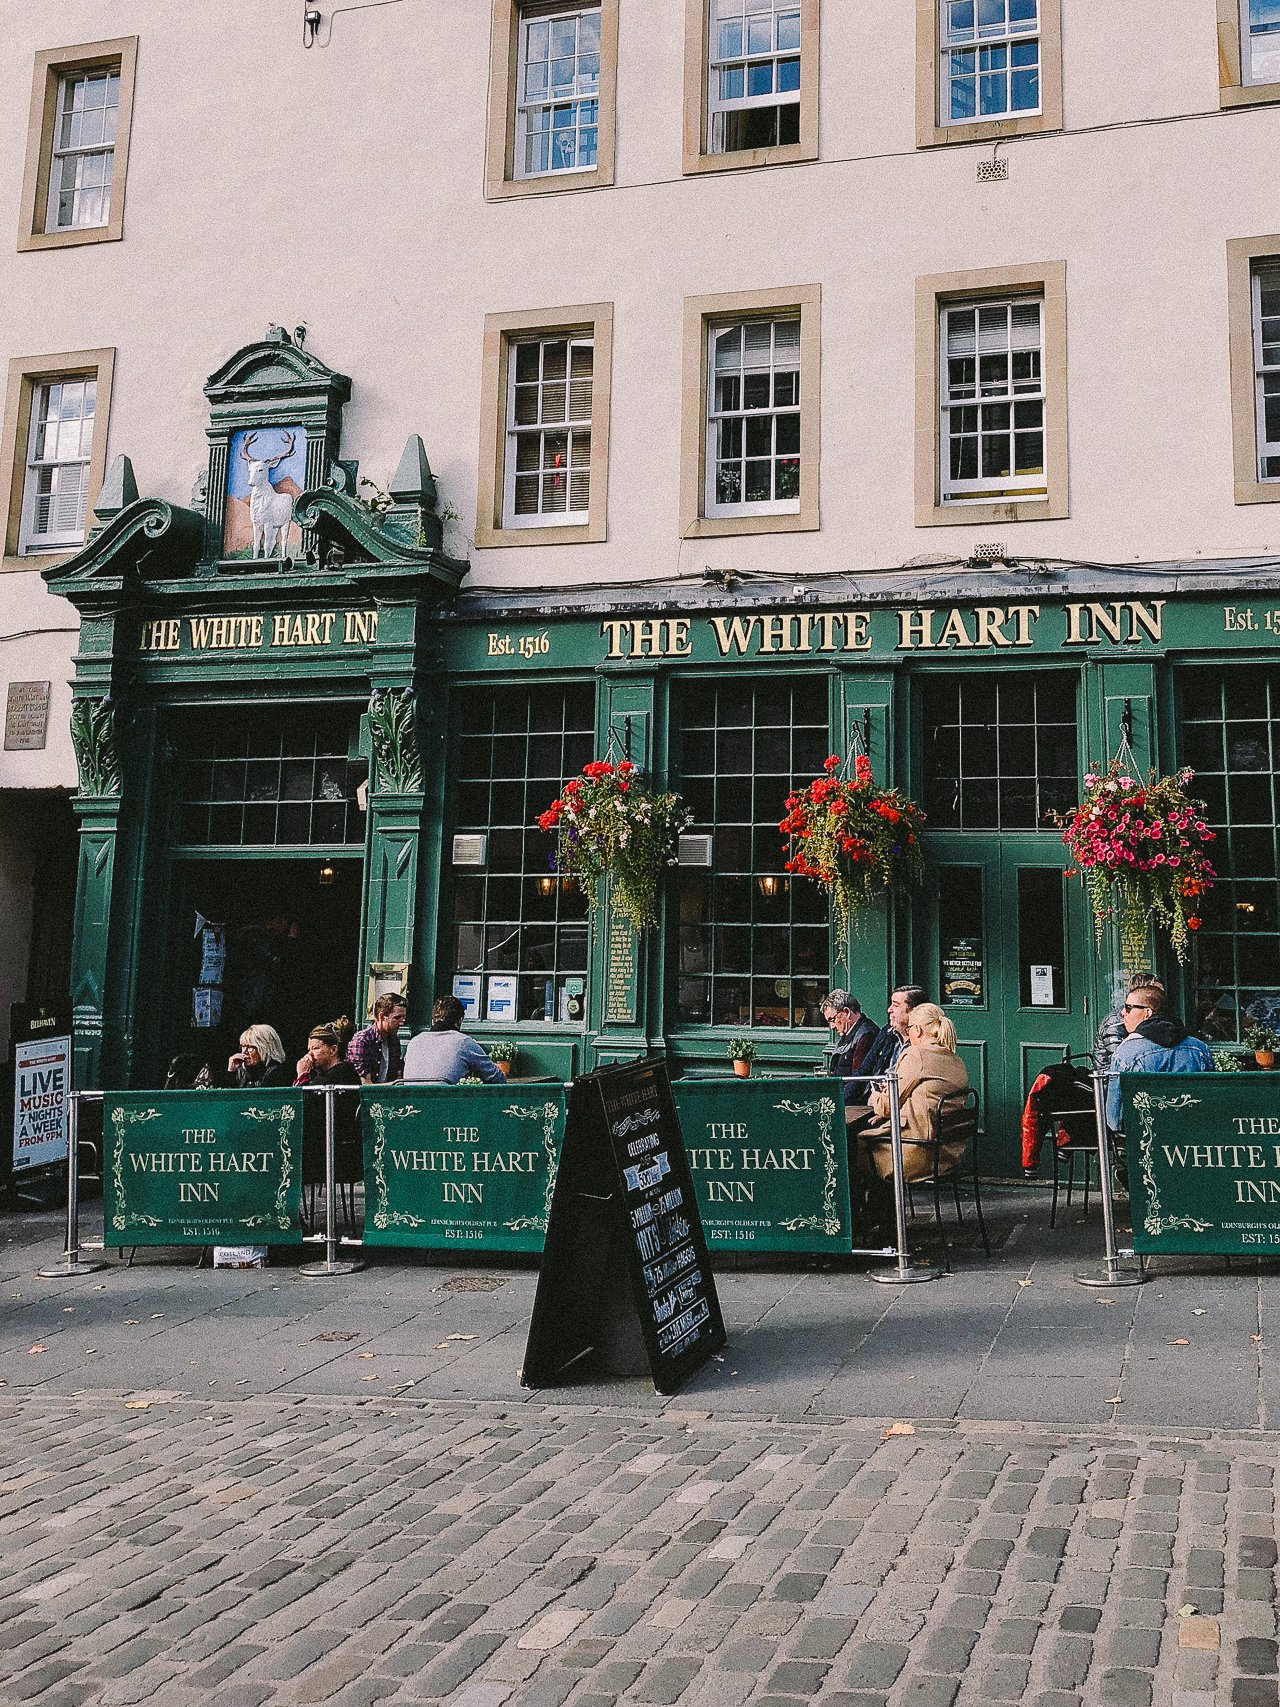 The White Hart Inn | Edinburgh Travel Guide by HonestlyYUM